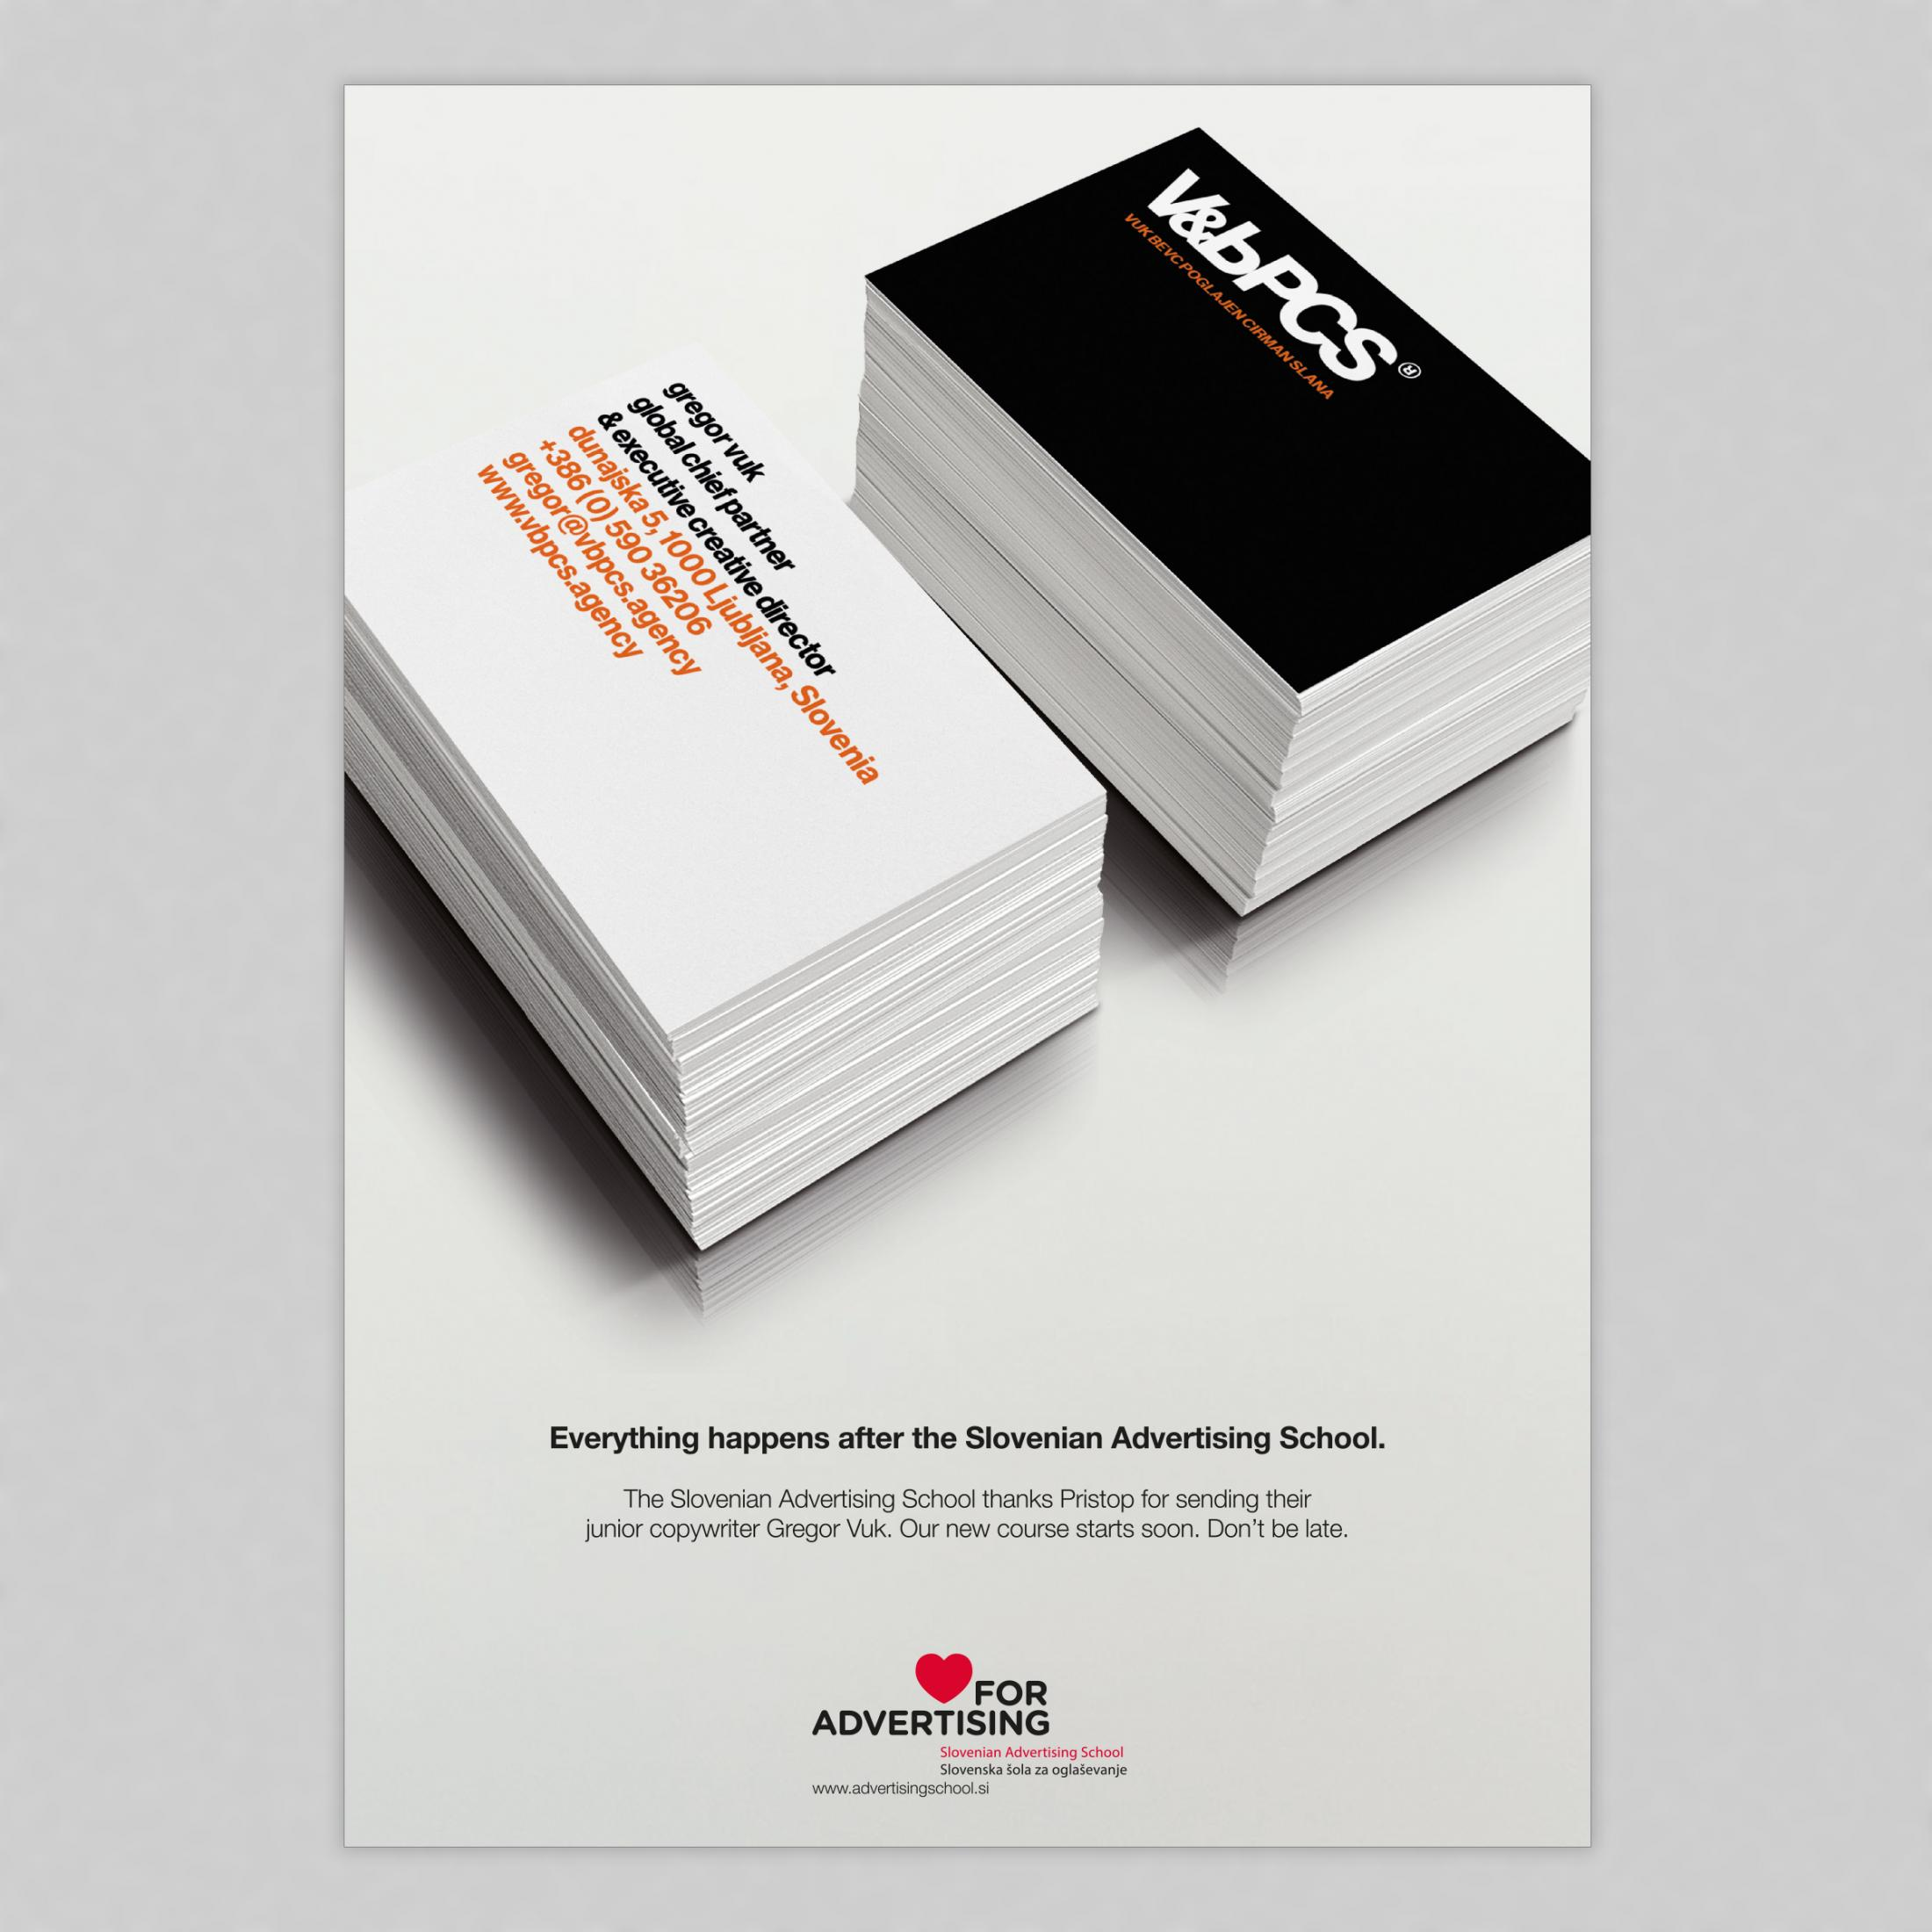 Slovenian Advertising School: Buzz cards for the future, 2